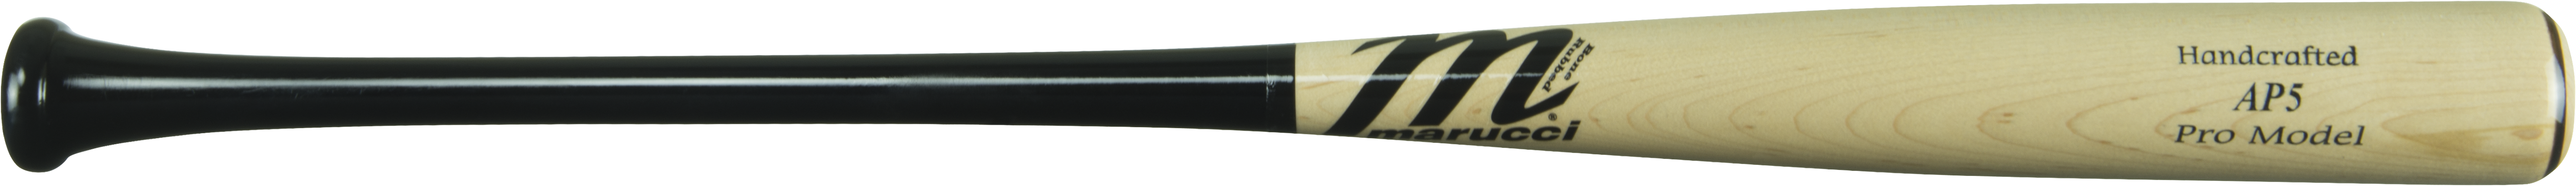 marucci-ap5-maple-pro-wood-baseball-bat-33-inch-black-natural MVE2AP5-BKN-33  840058700022 Knob Tapered. Handle Tapered. Barrel Large. Feel End Loaded. Handcrafted from